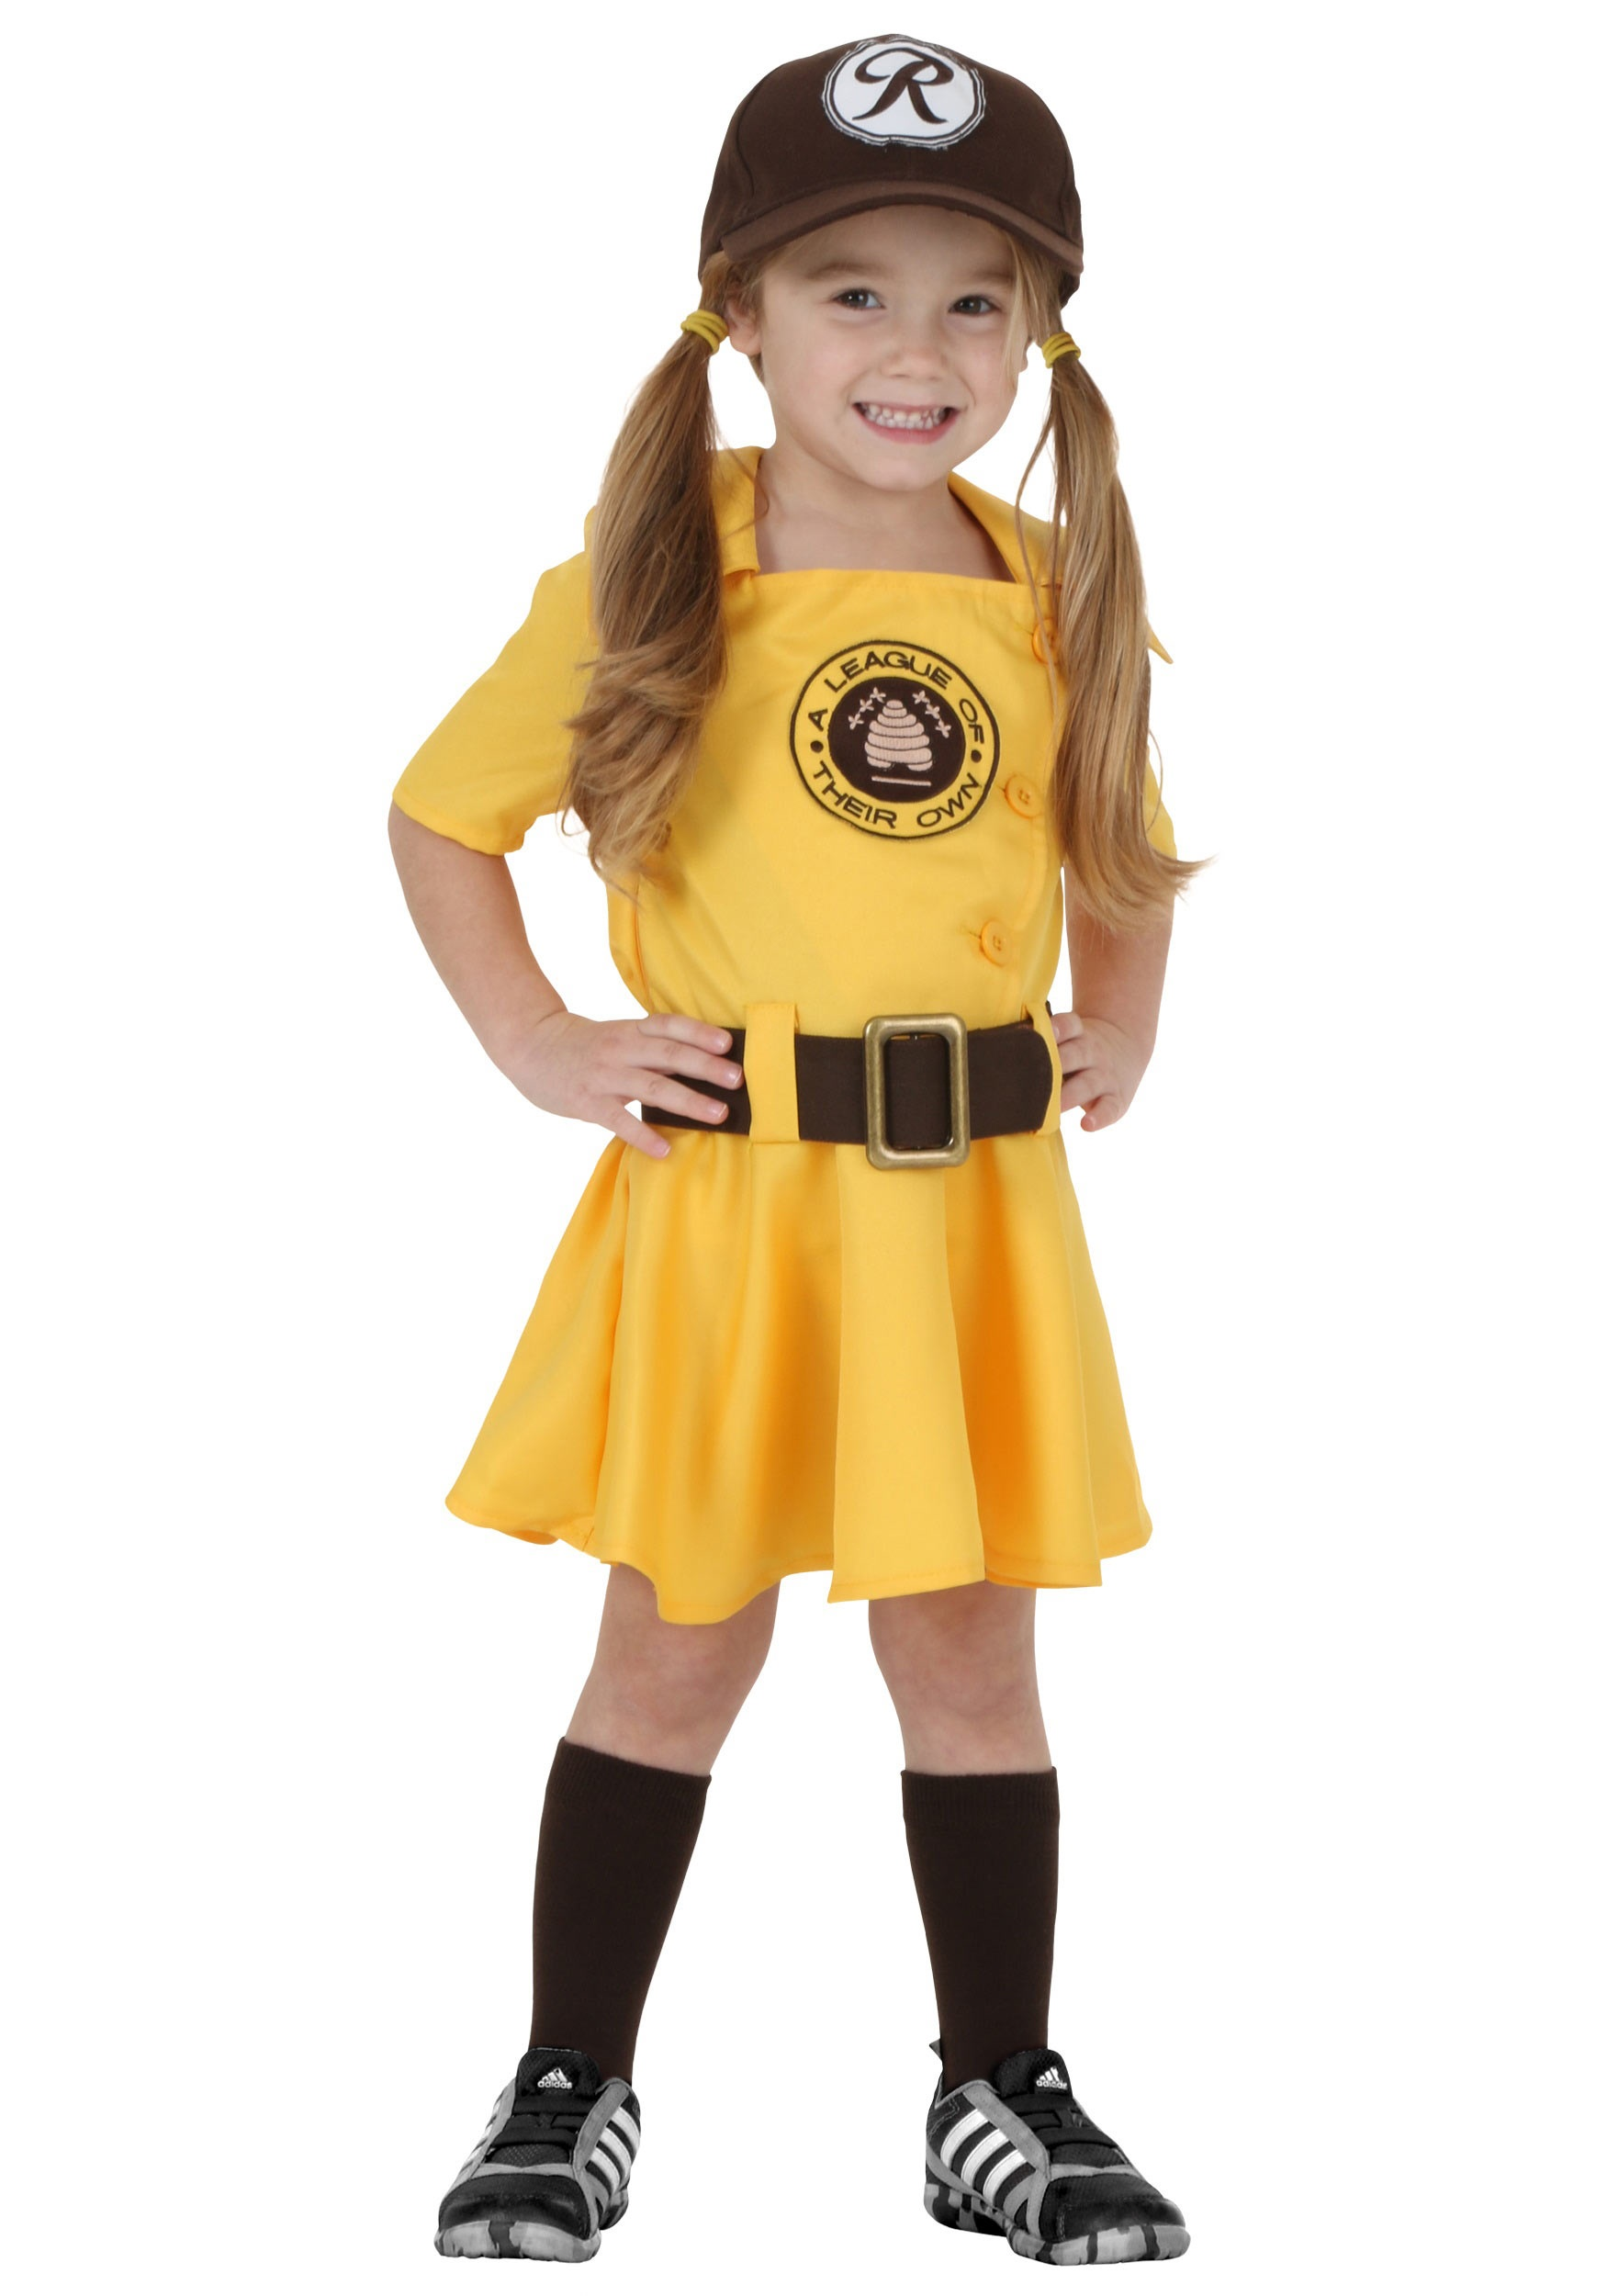 Toddler Kit Costume from A League of Their Own